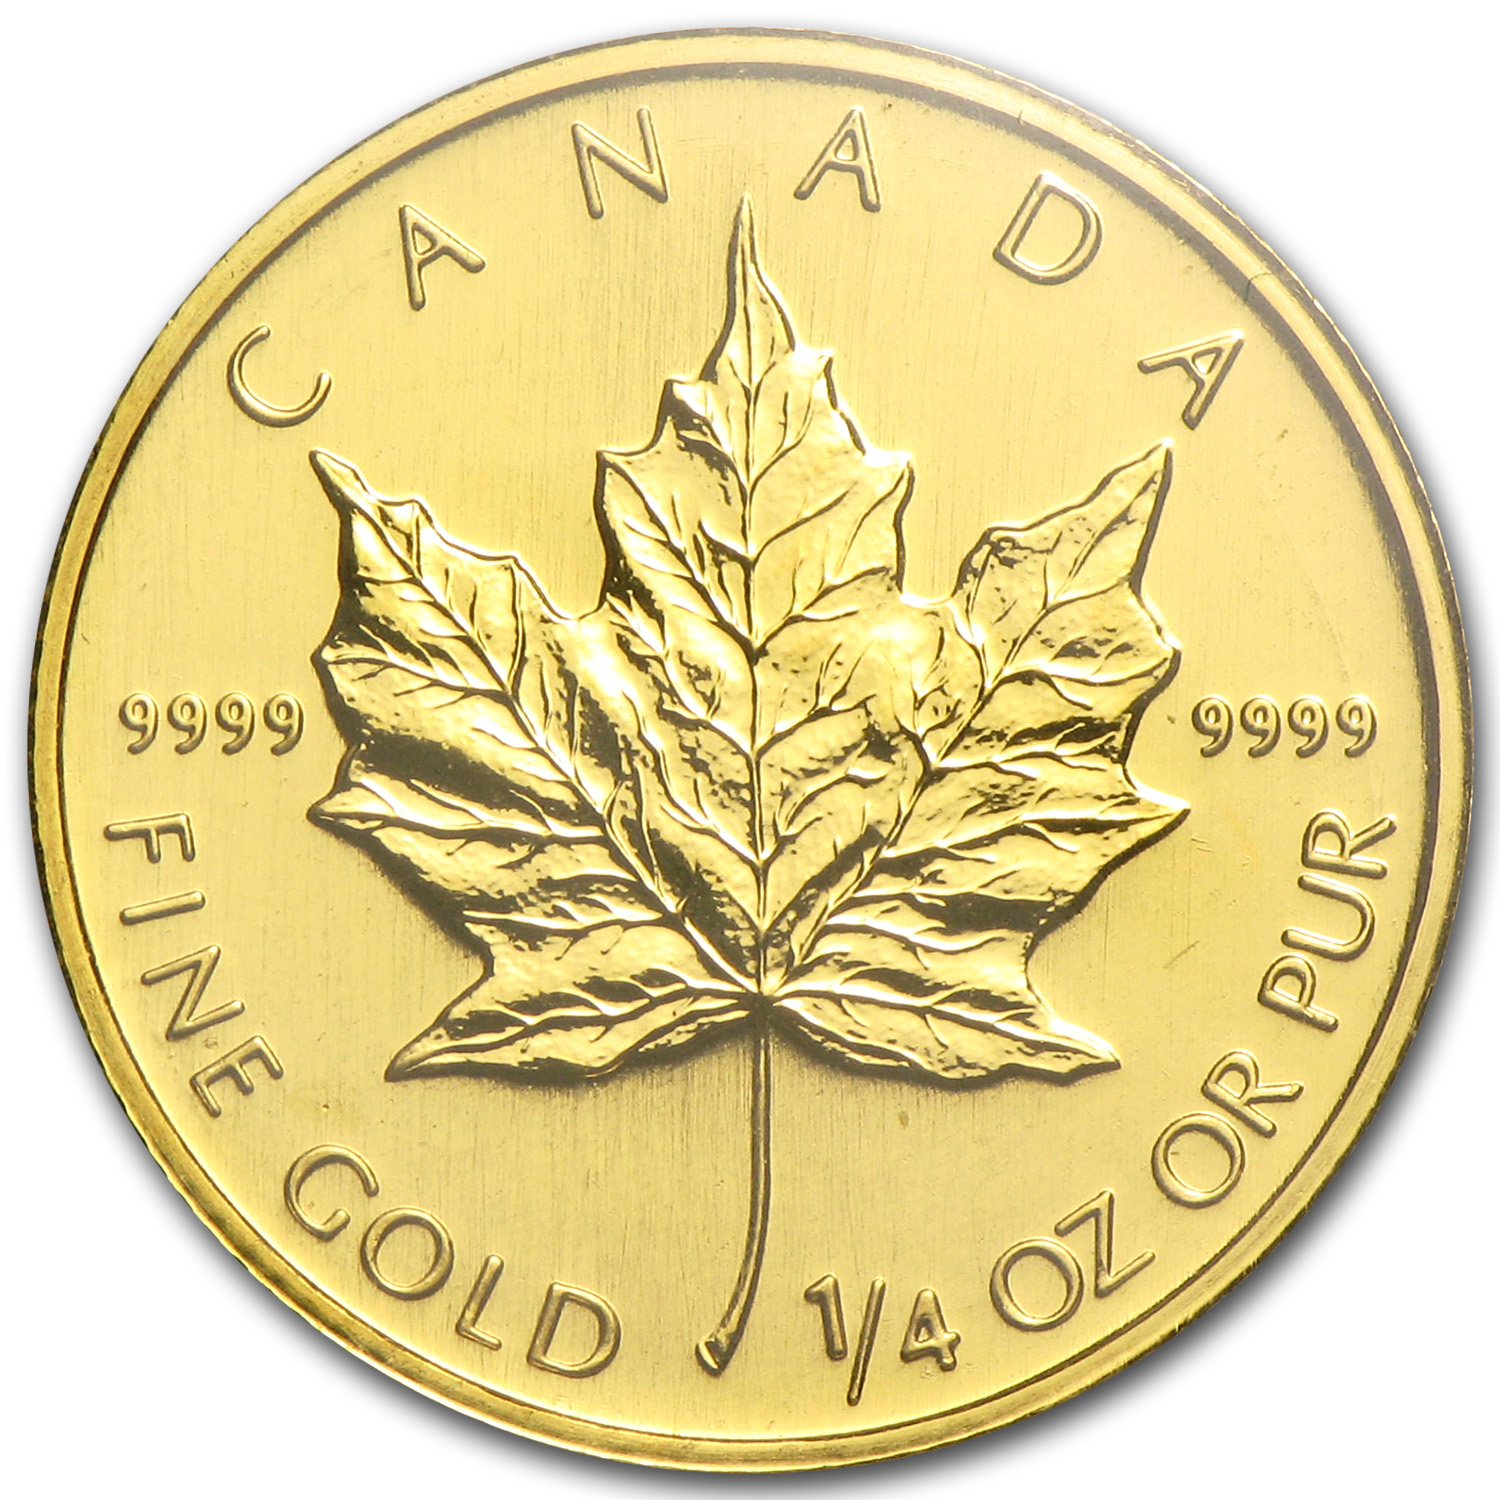 2008 Canada 1/4 oz Gold Maple Leaf BU